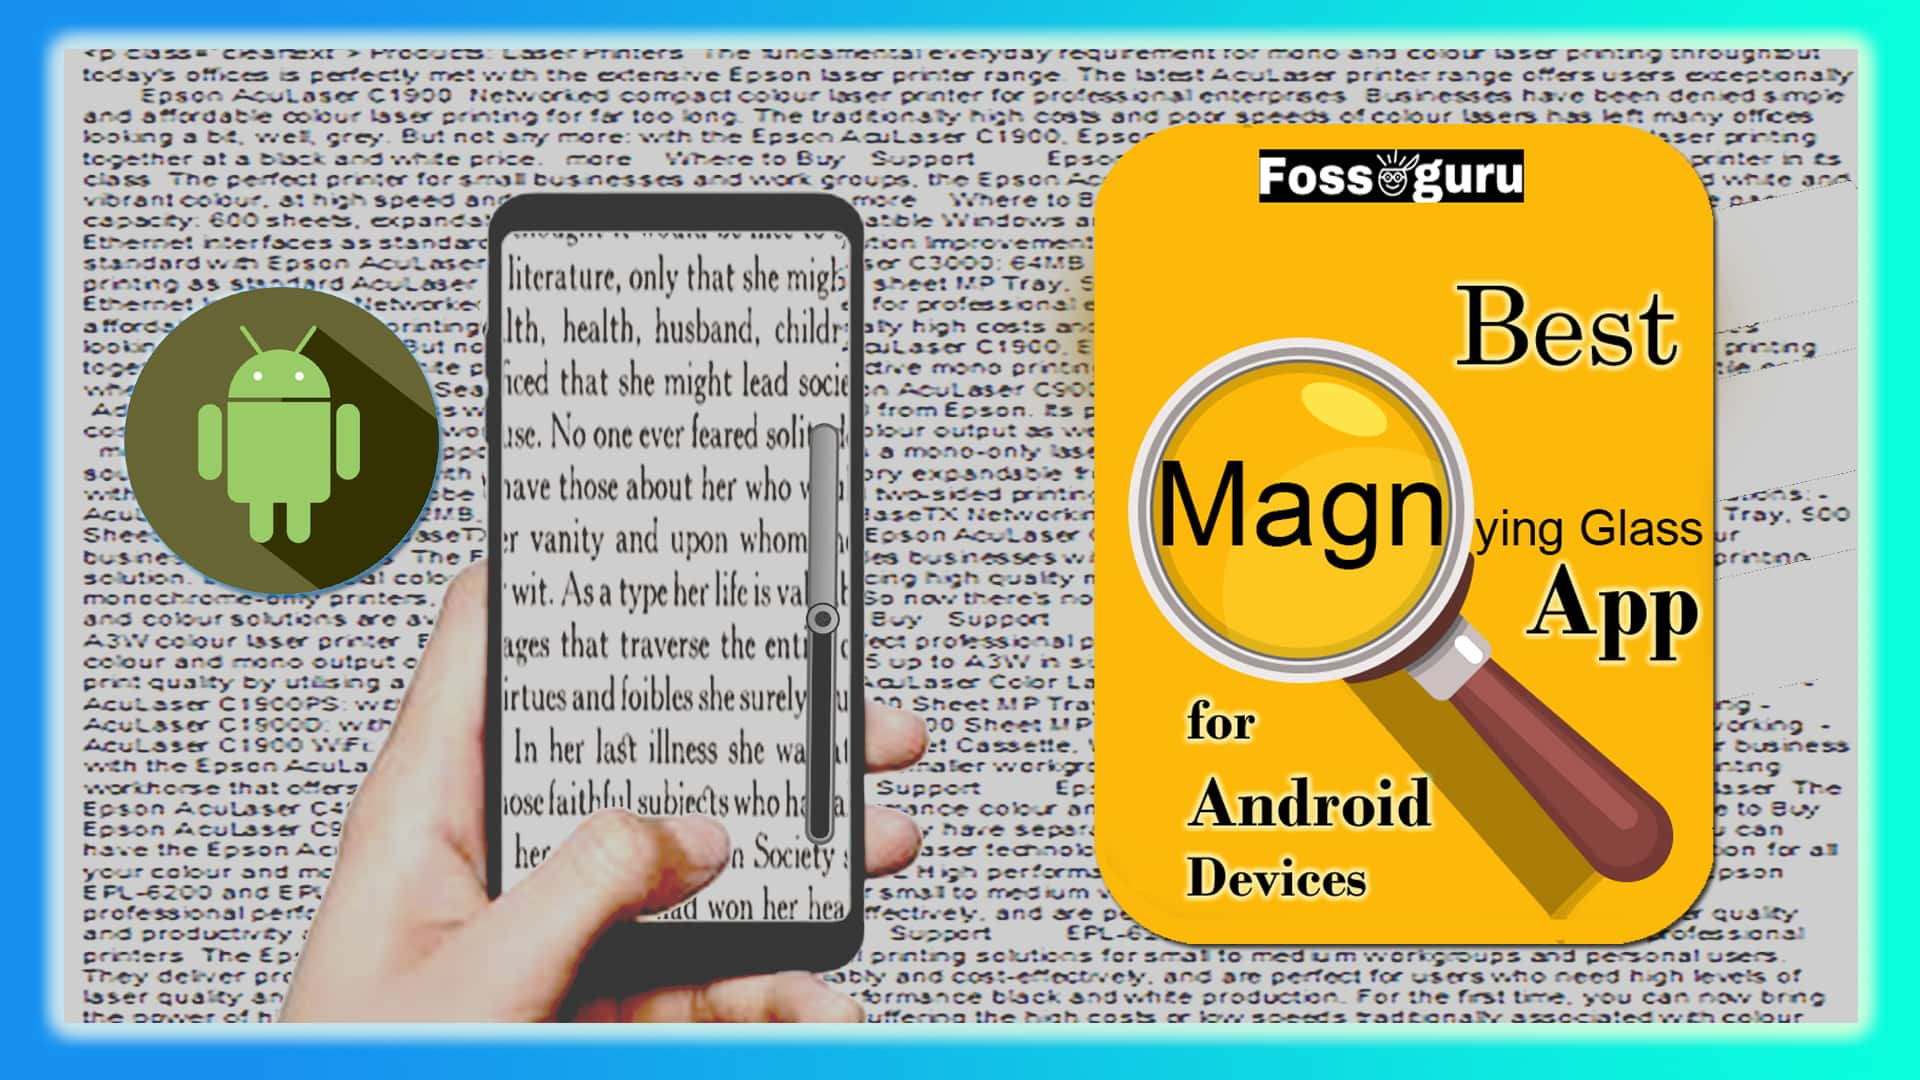 Best Magnifying Glass App for Android